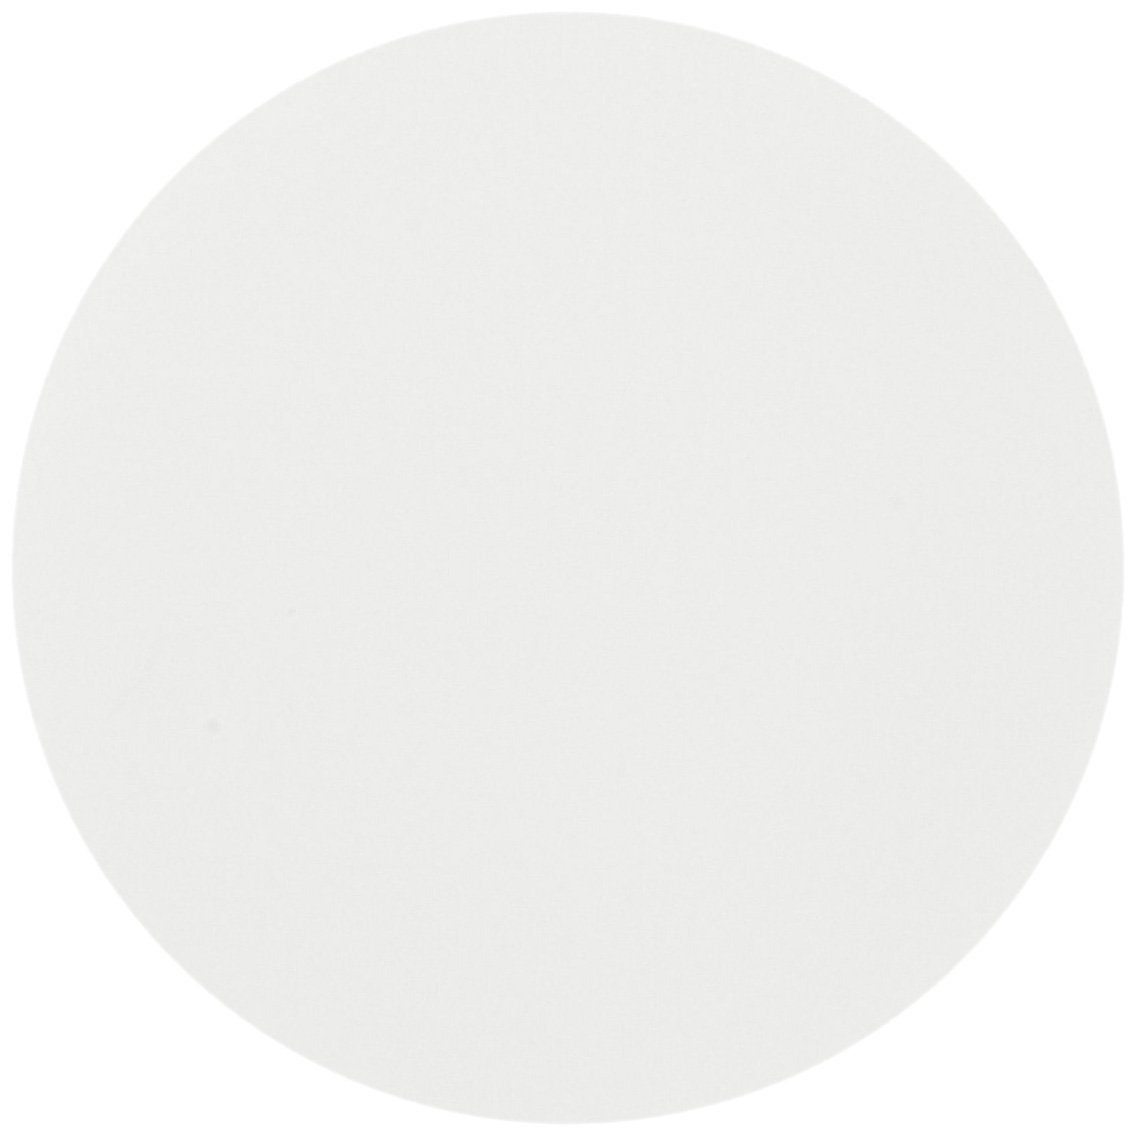 B00394F6OY Whatman 10312612 Quantitative Filter Paper Circles, 2 Micron, Grade 602H, 150mm Diameter (Pack of 100) 51a6D1xnBRL